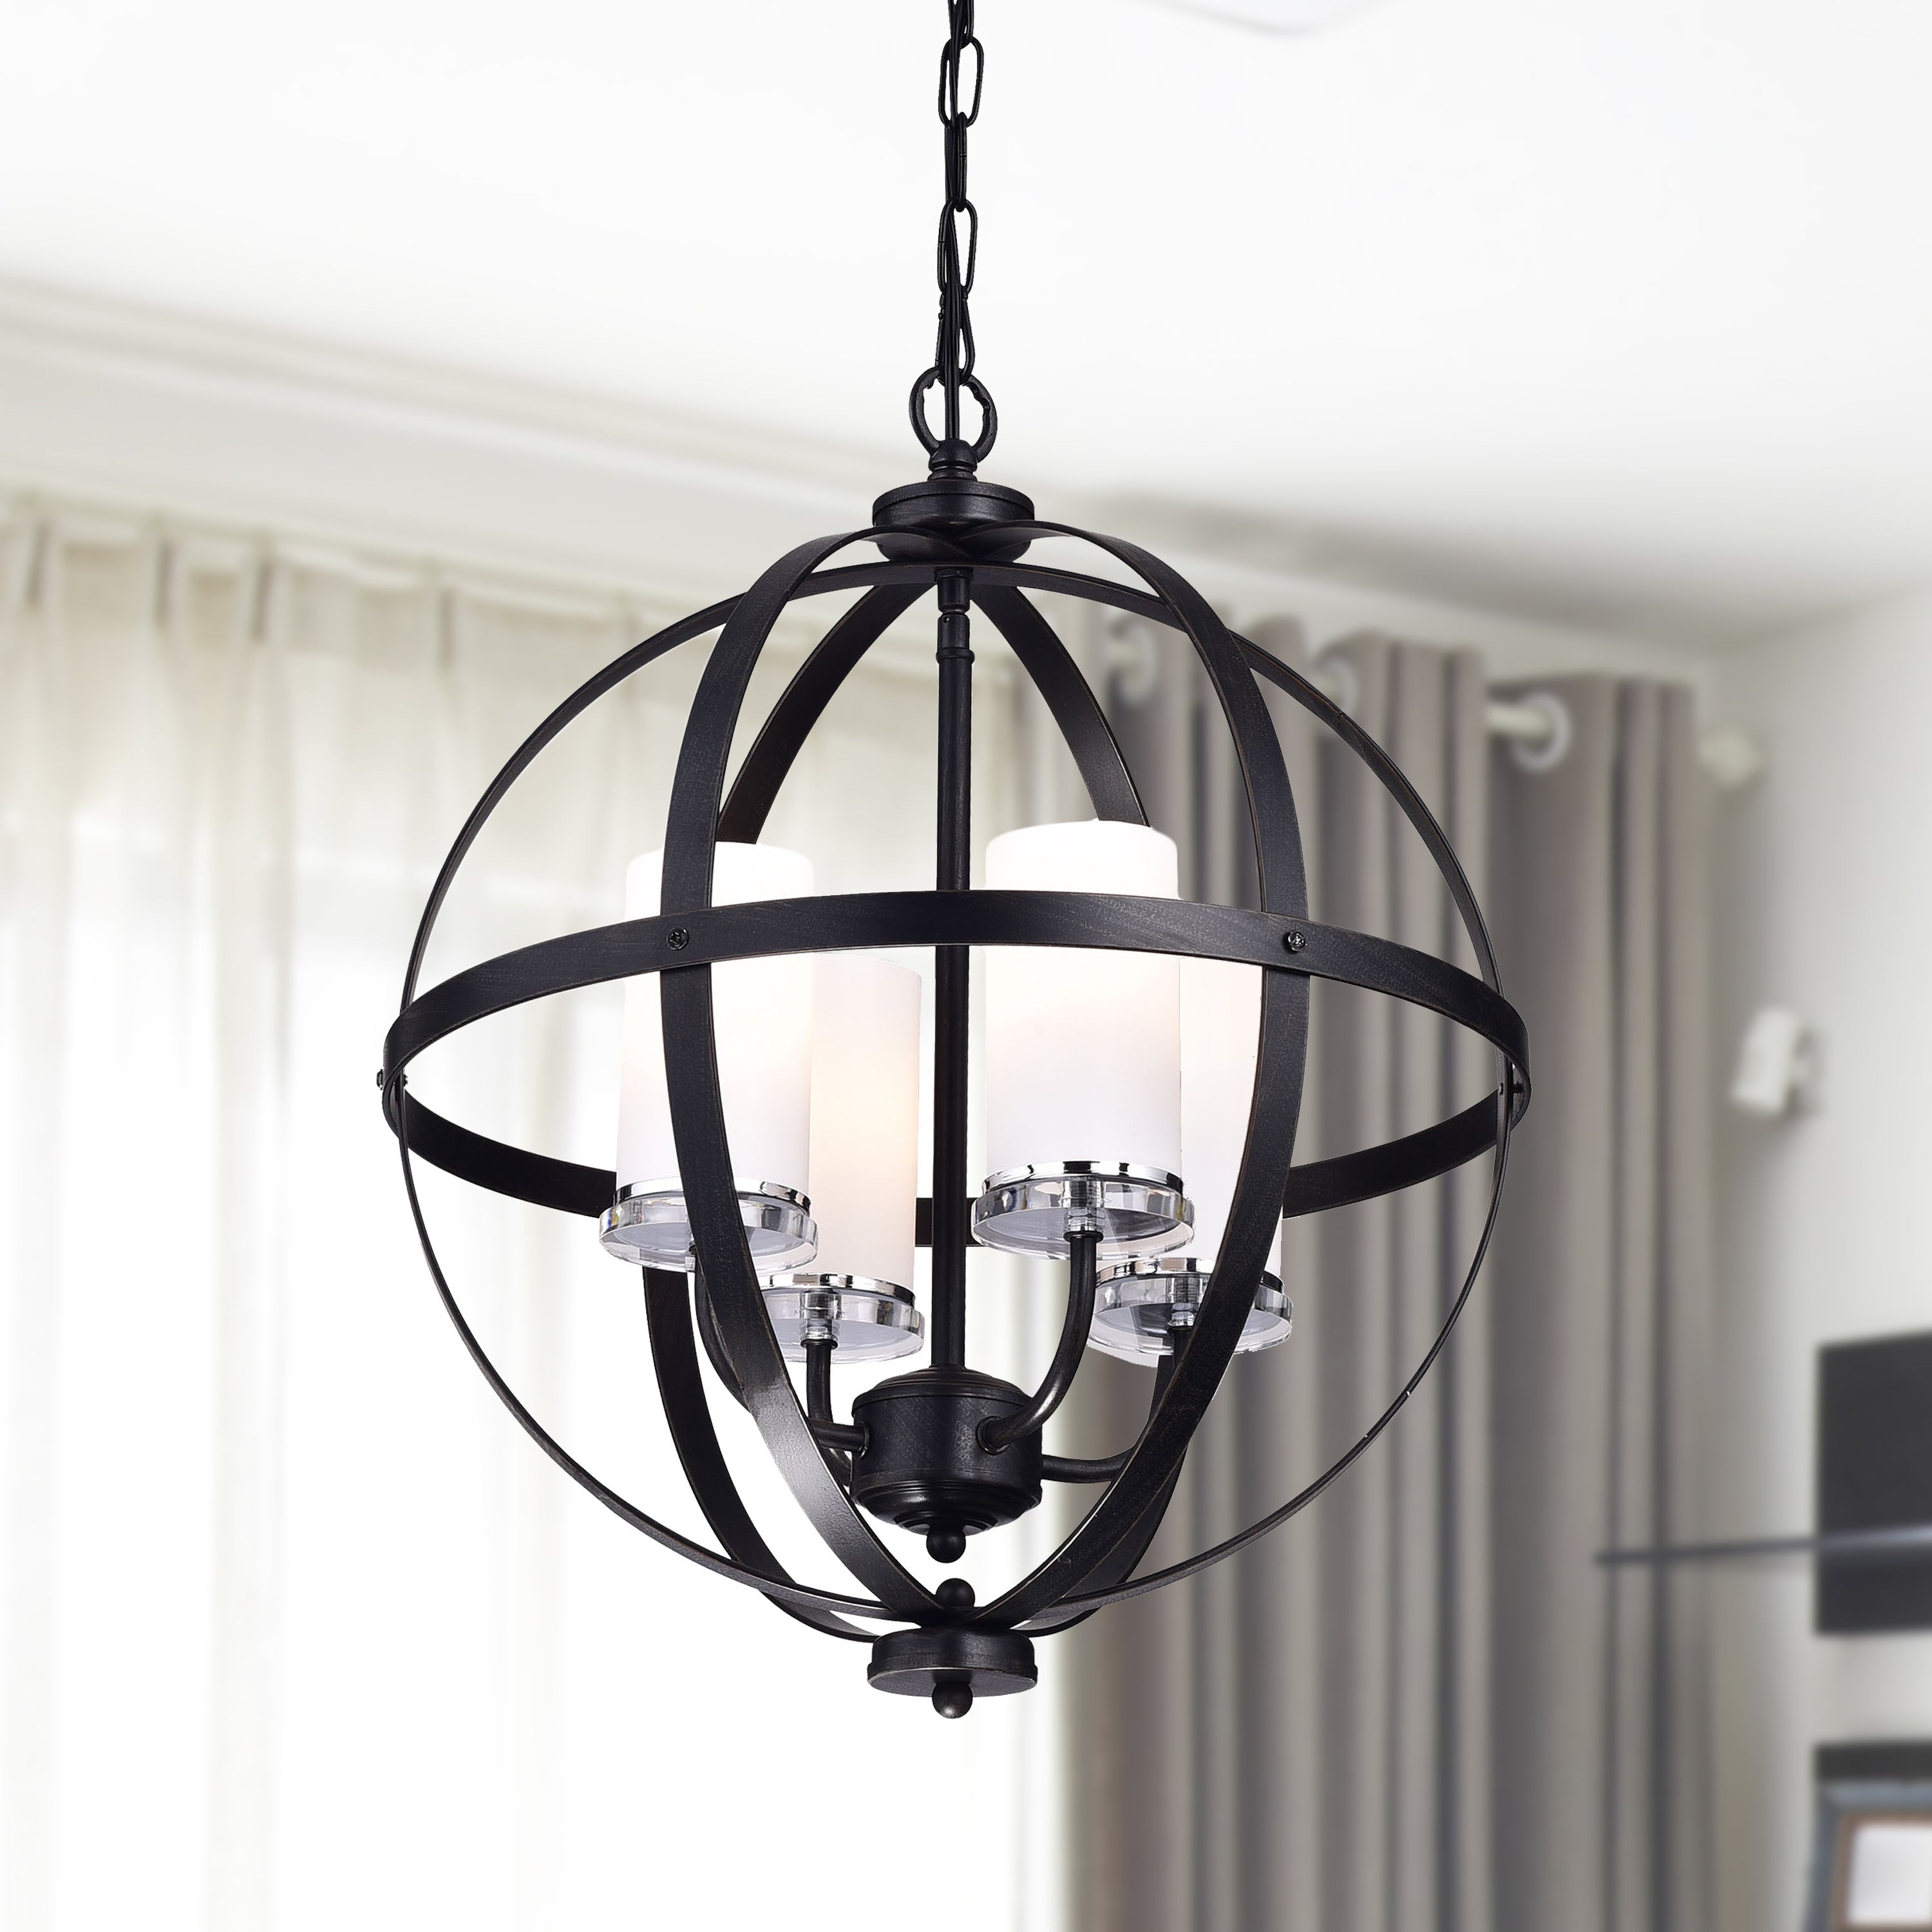 Donna 4 Light Globe Chandeliers With Regard To Favorite Benita Antique Black Iron Orb Chandelier With Glass Globe (View 11 of 25)